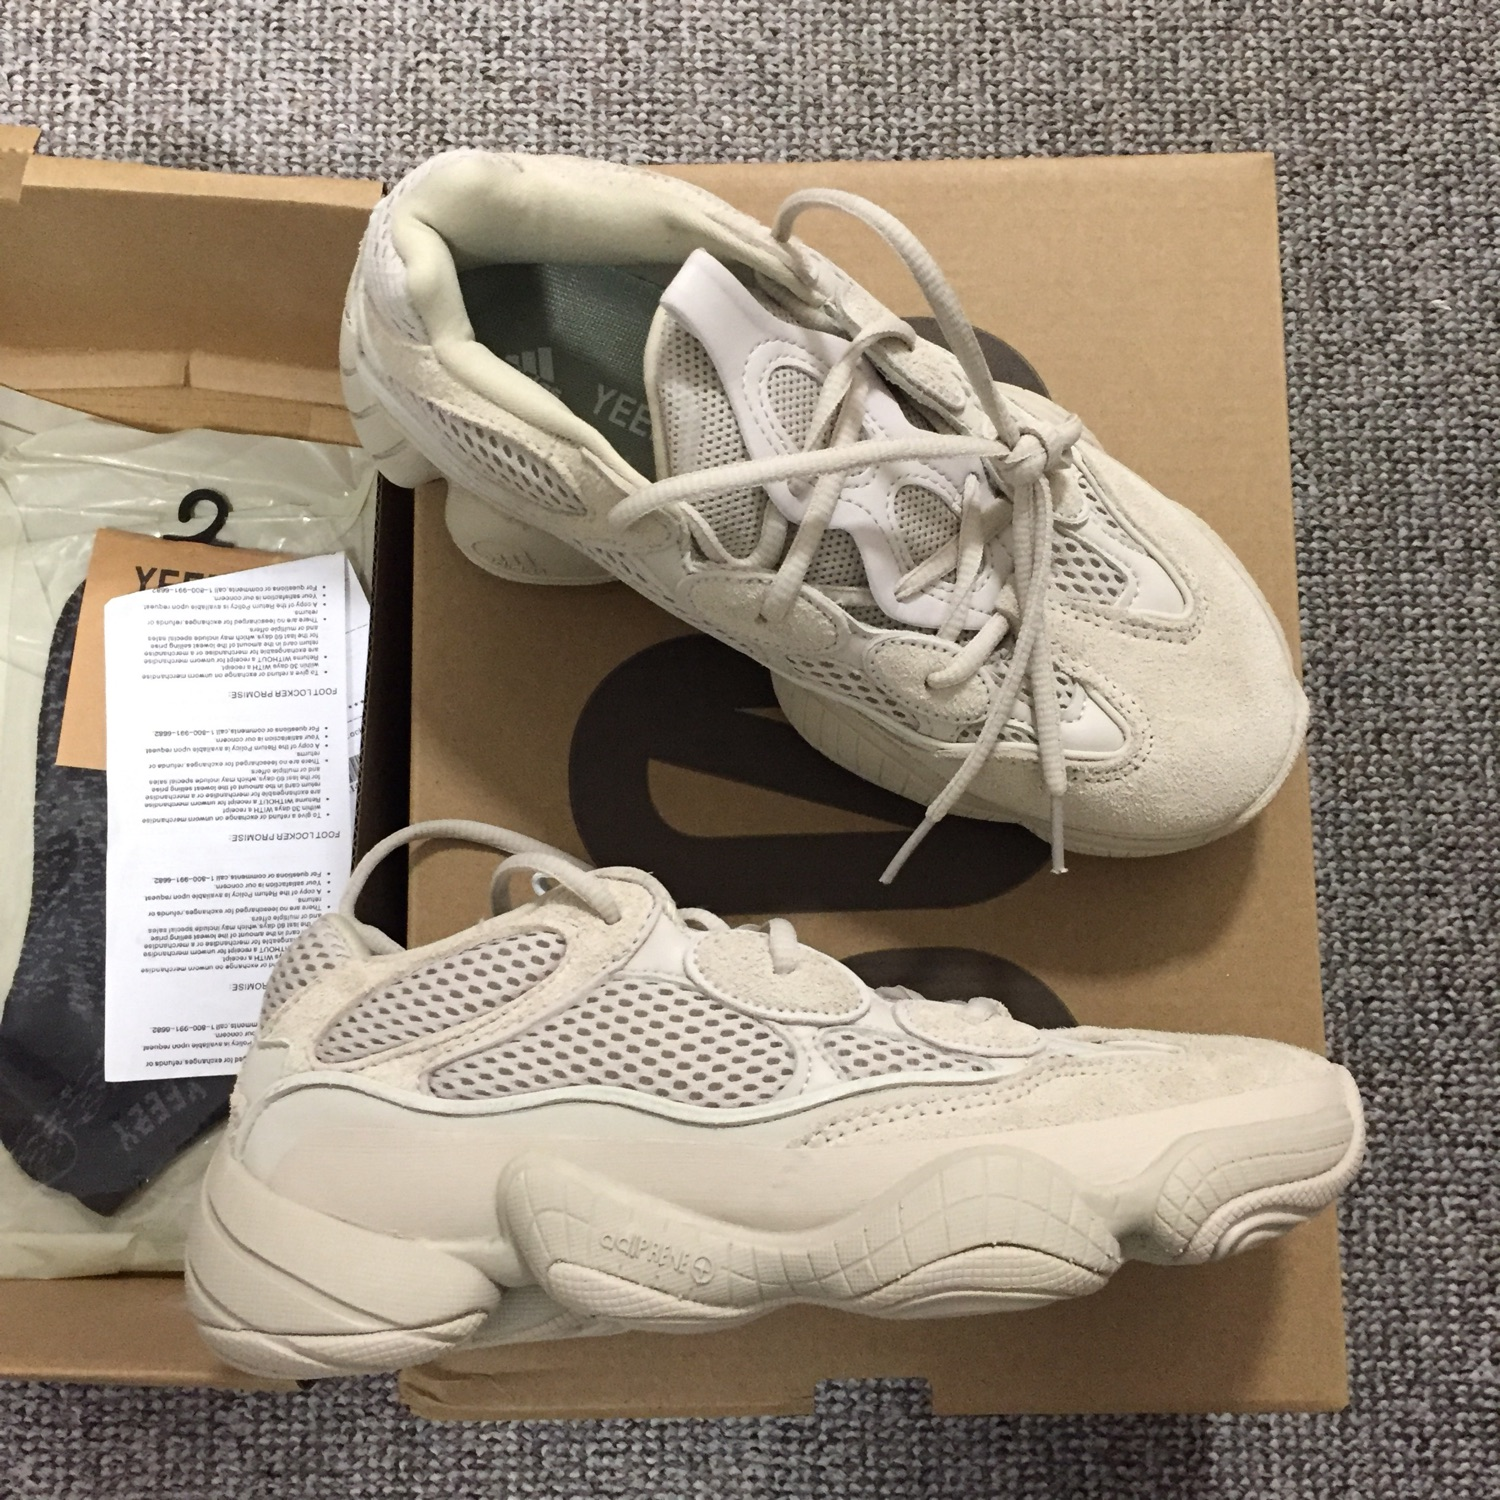 cheap for discount 0ab38 6a8a6 Adidas X Yeezy 500 Blush Size Uk5